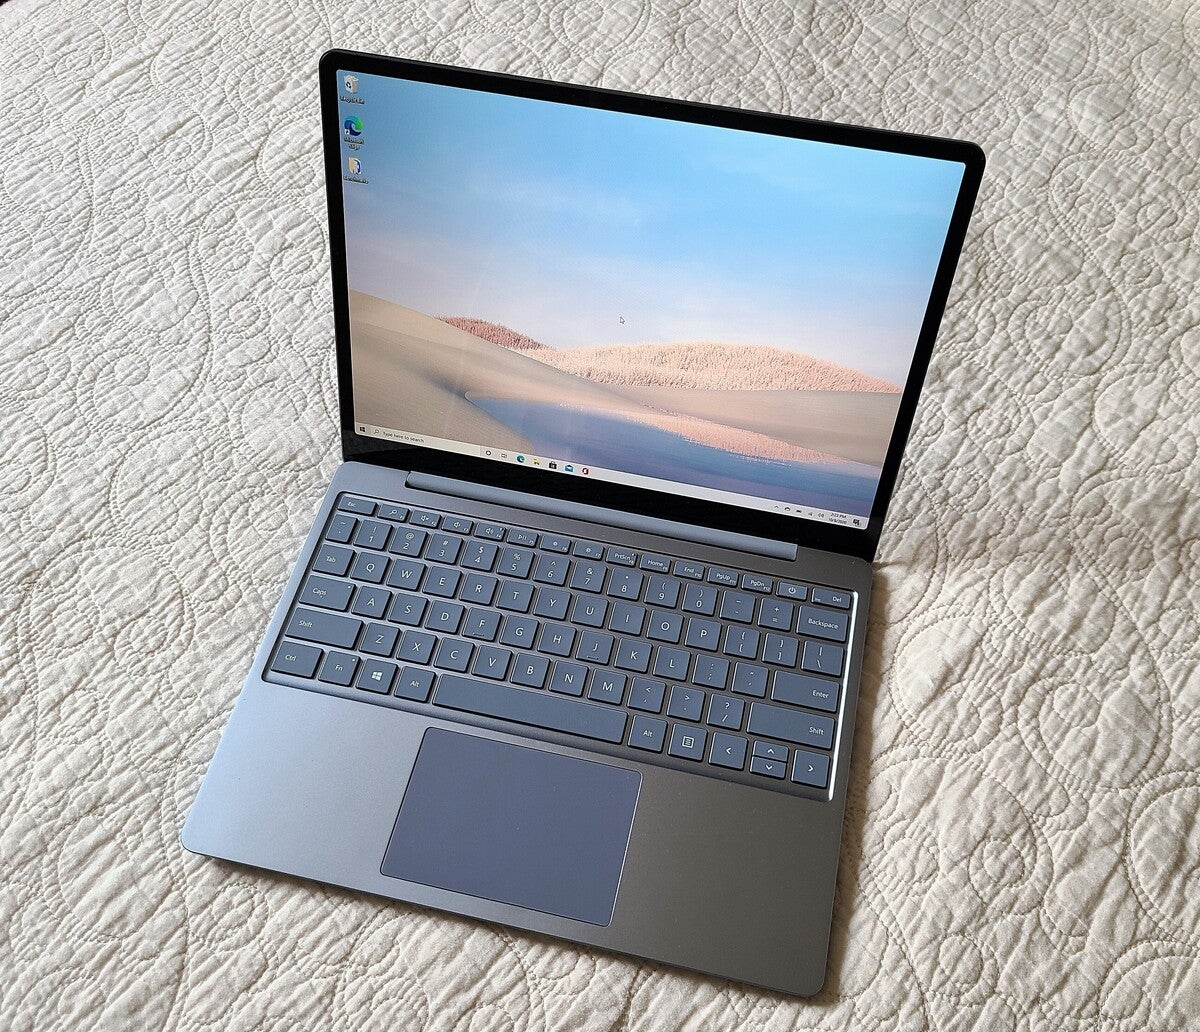 primary 2 100861573 large - Surface Laptop Go review: Microsoft delivers a decent budget PC